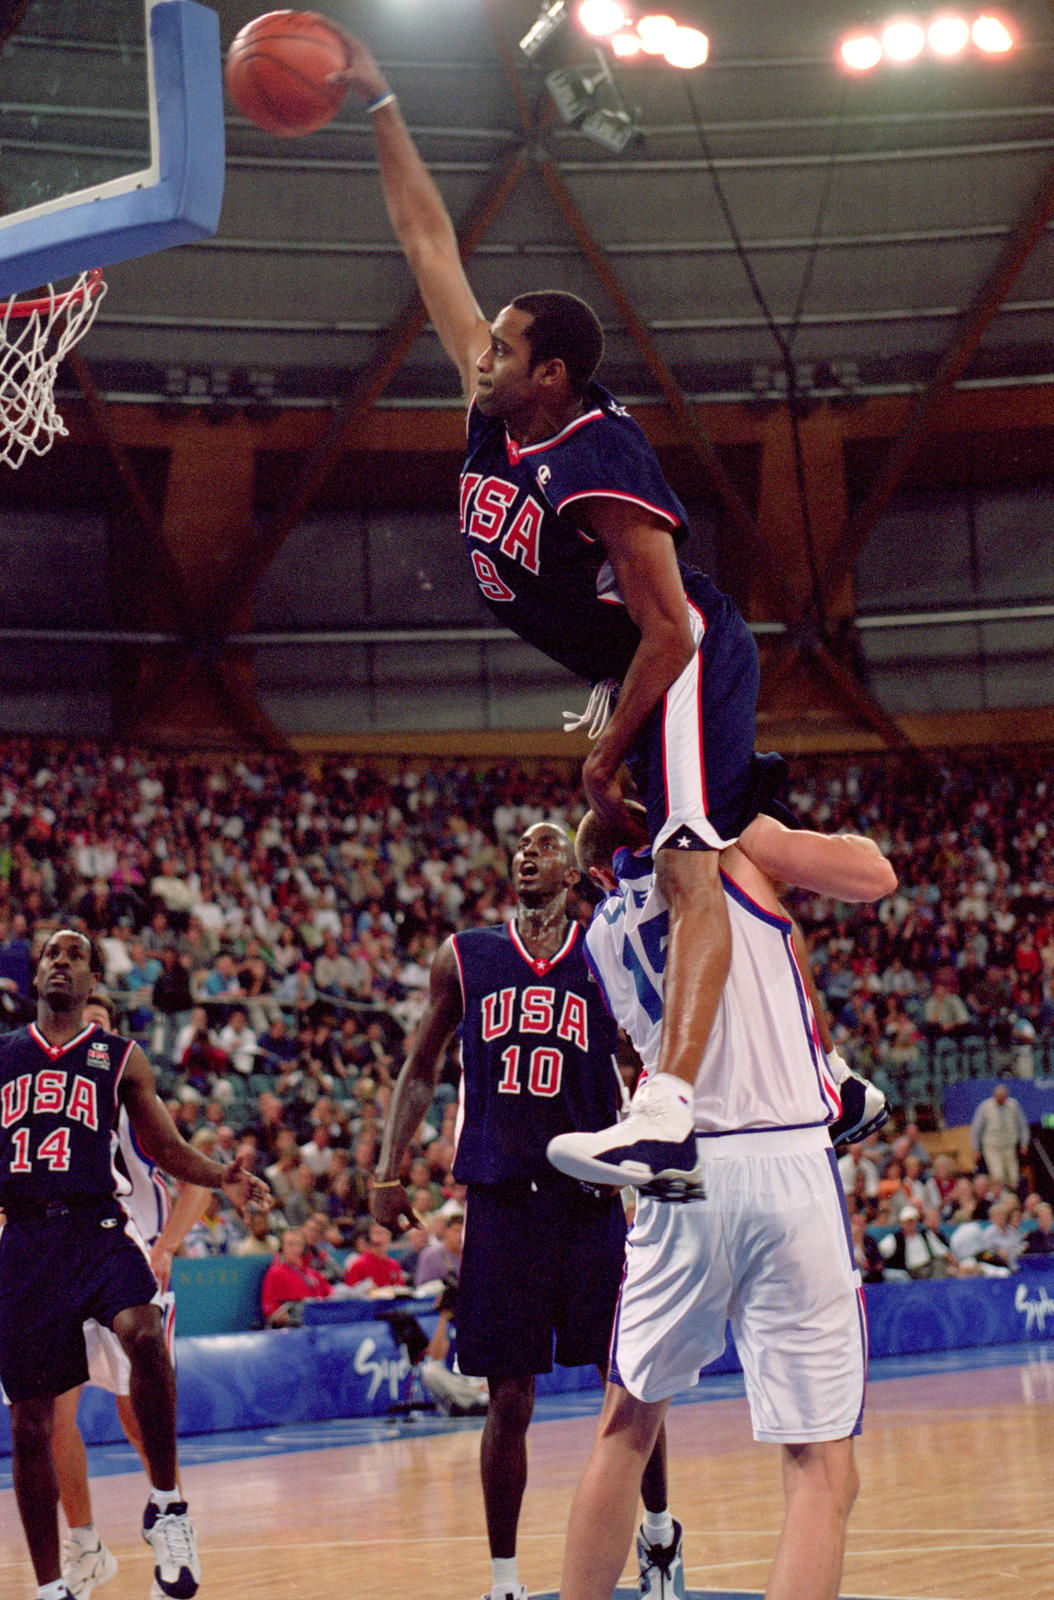 Vince Carter To Wear Iconic Nike Shox BB4 For Remainder Of The Season